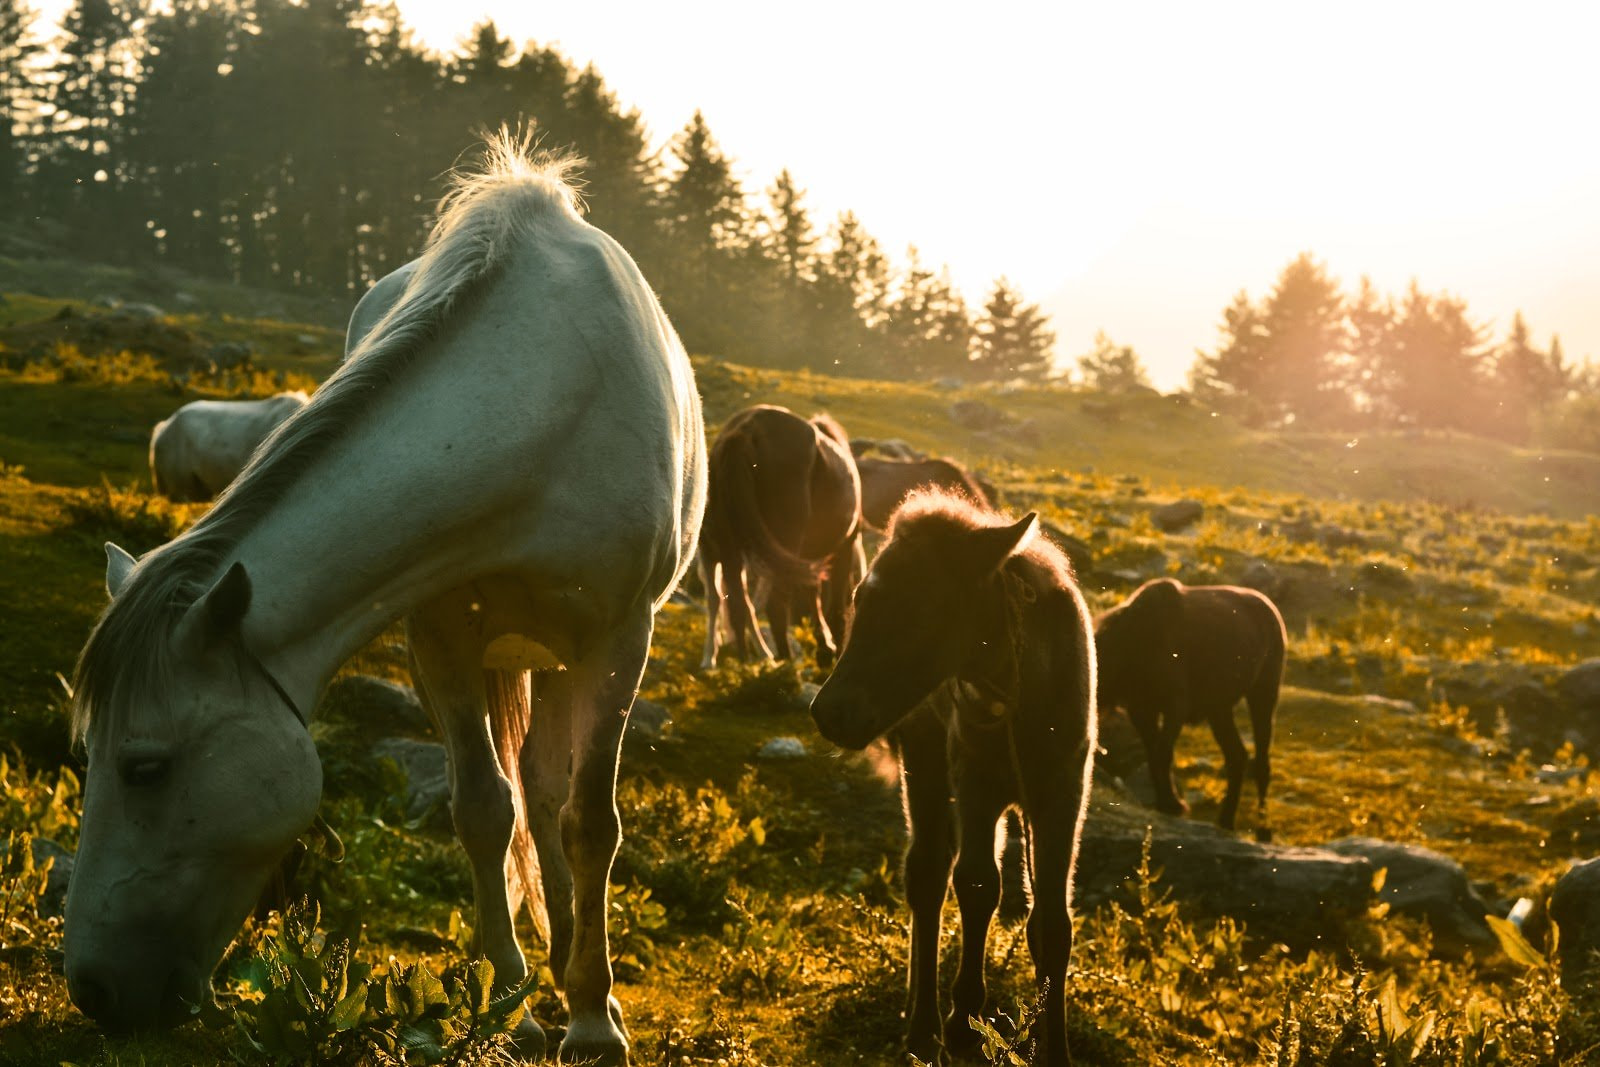 Golden hour photography of horses grazing in a field by Nikhil Kumar